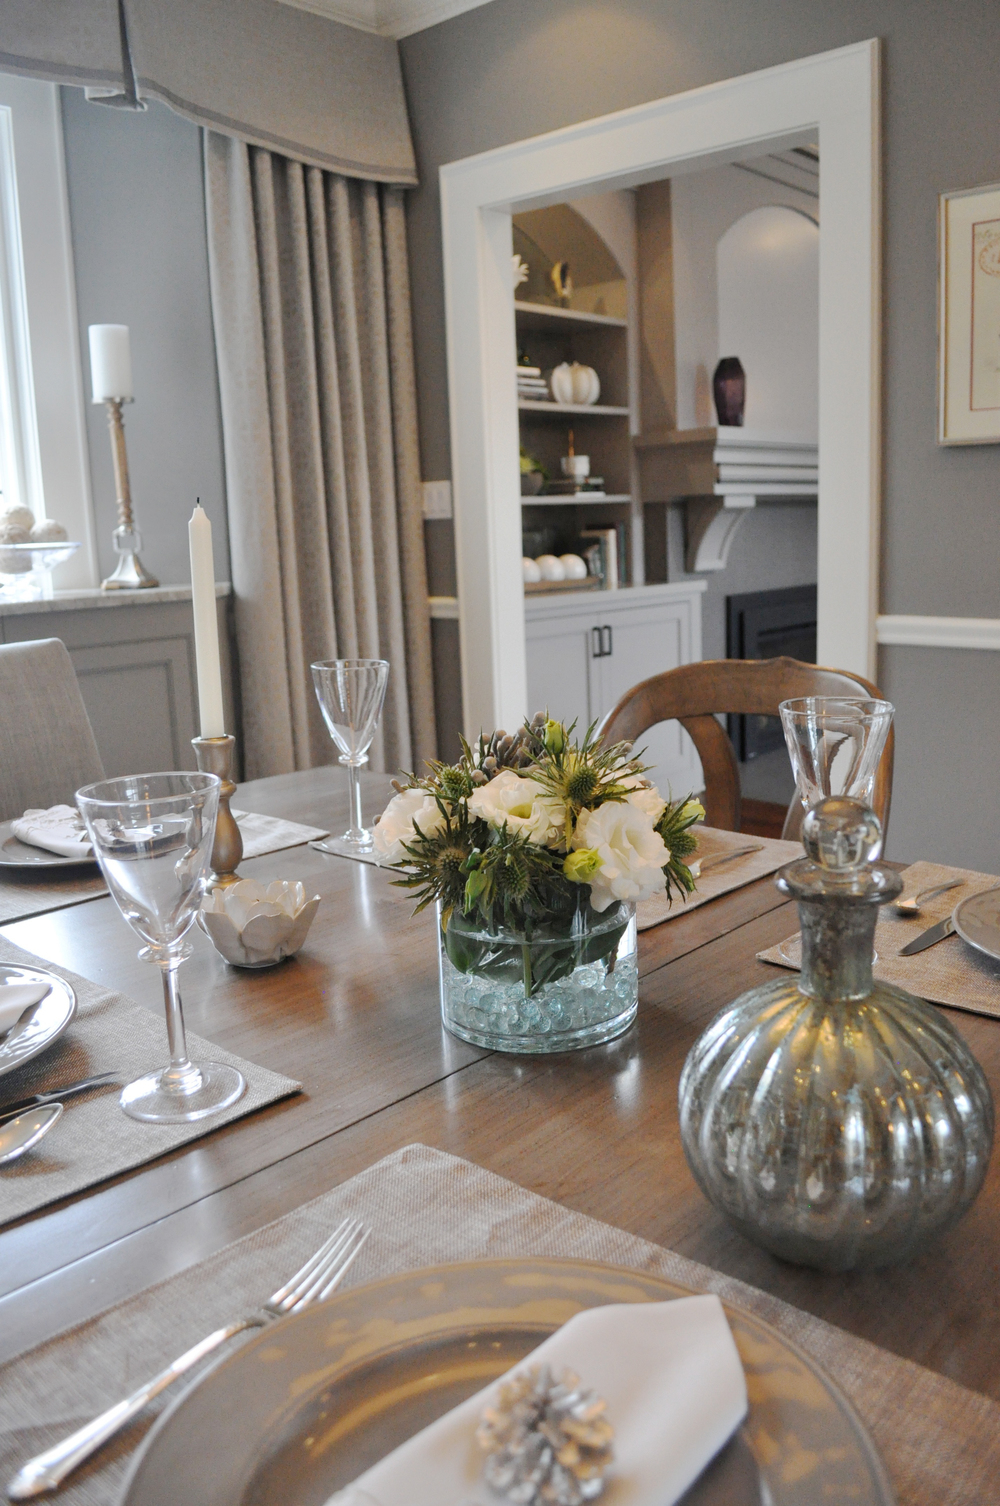 KAM DESIGN_Dining Room_Table Setting_Gray_Taupe_Teal_Timeless_Galviston Gray_Pollack Wool Grille Custom Drapery_Lorts Dining Table_2015_web.jpg